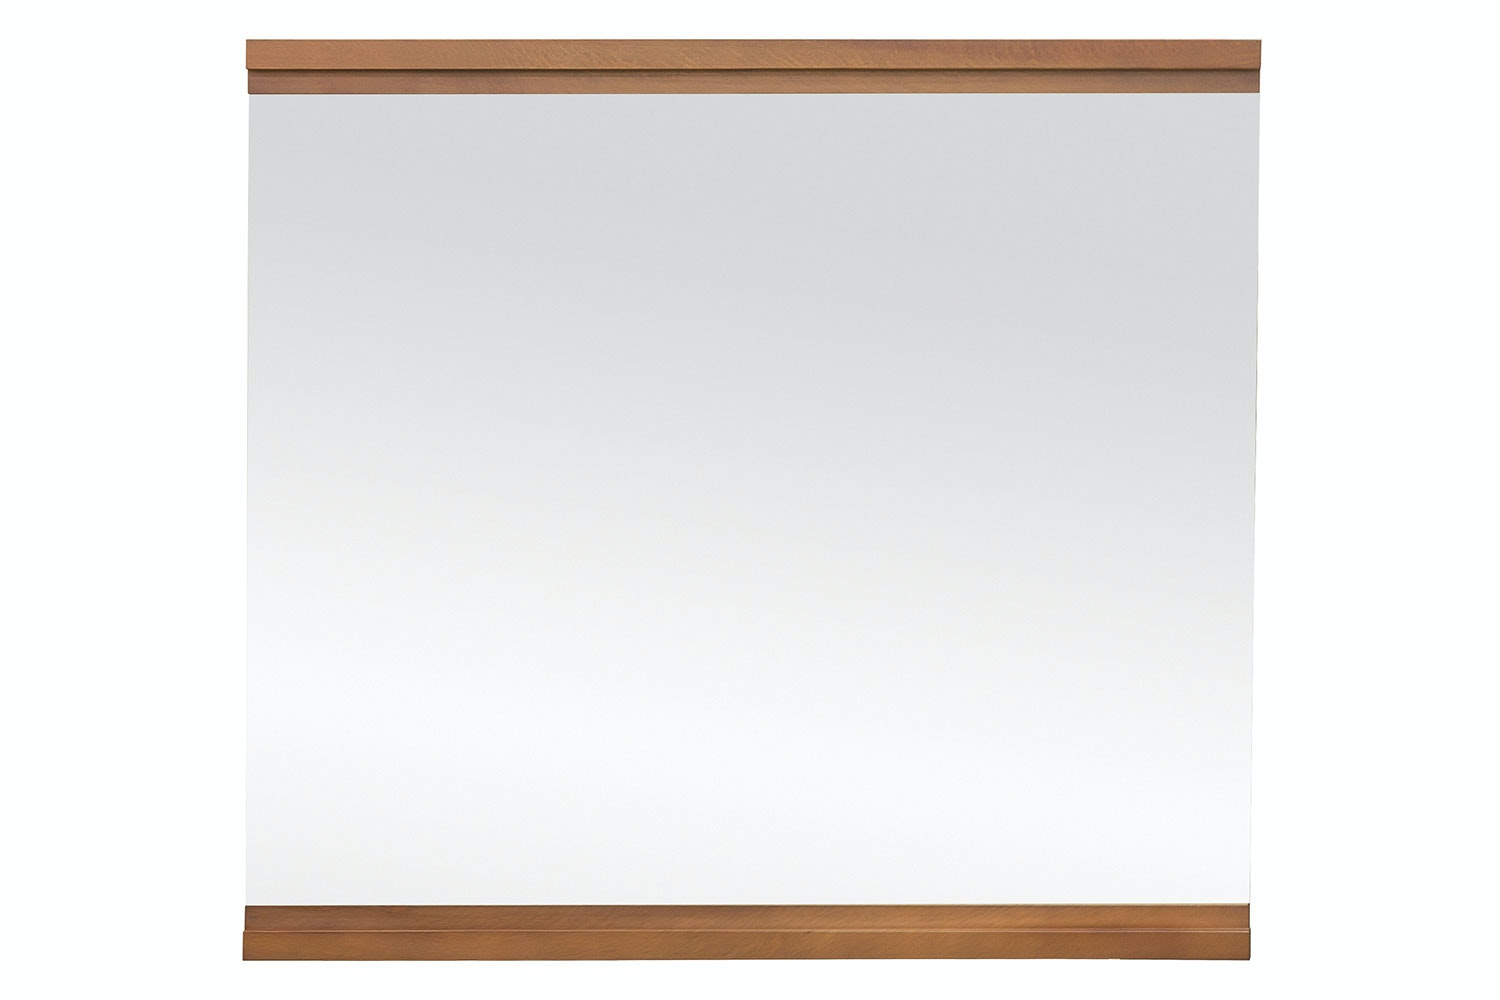 Matai Bay 1150 Wall Mirror by Sorensen Furniture